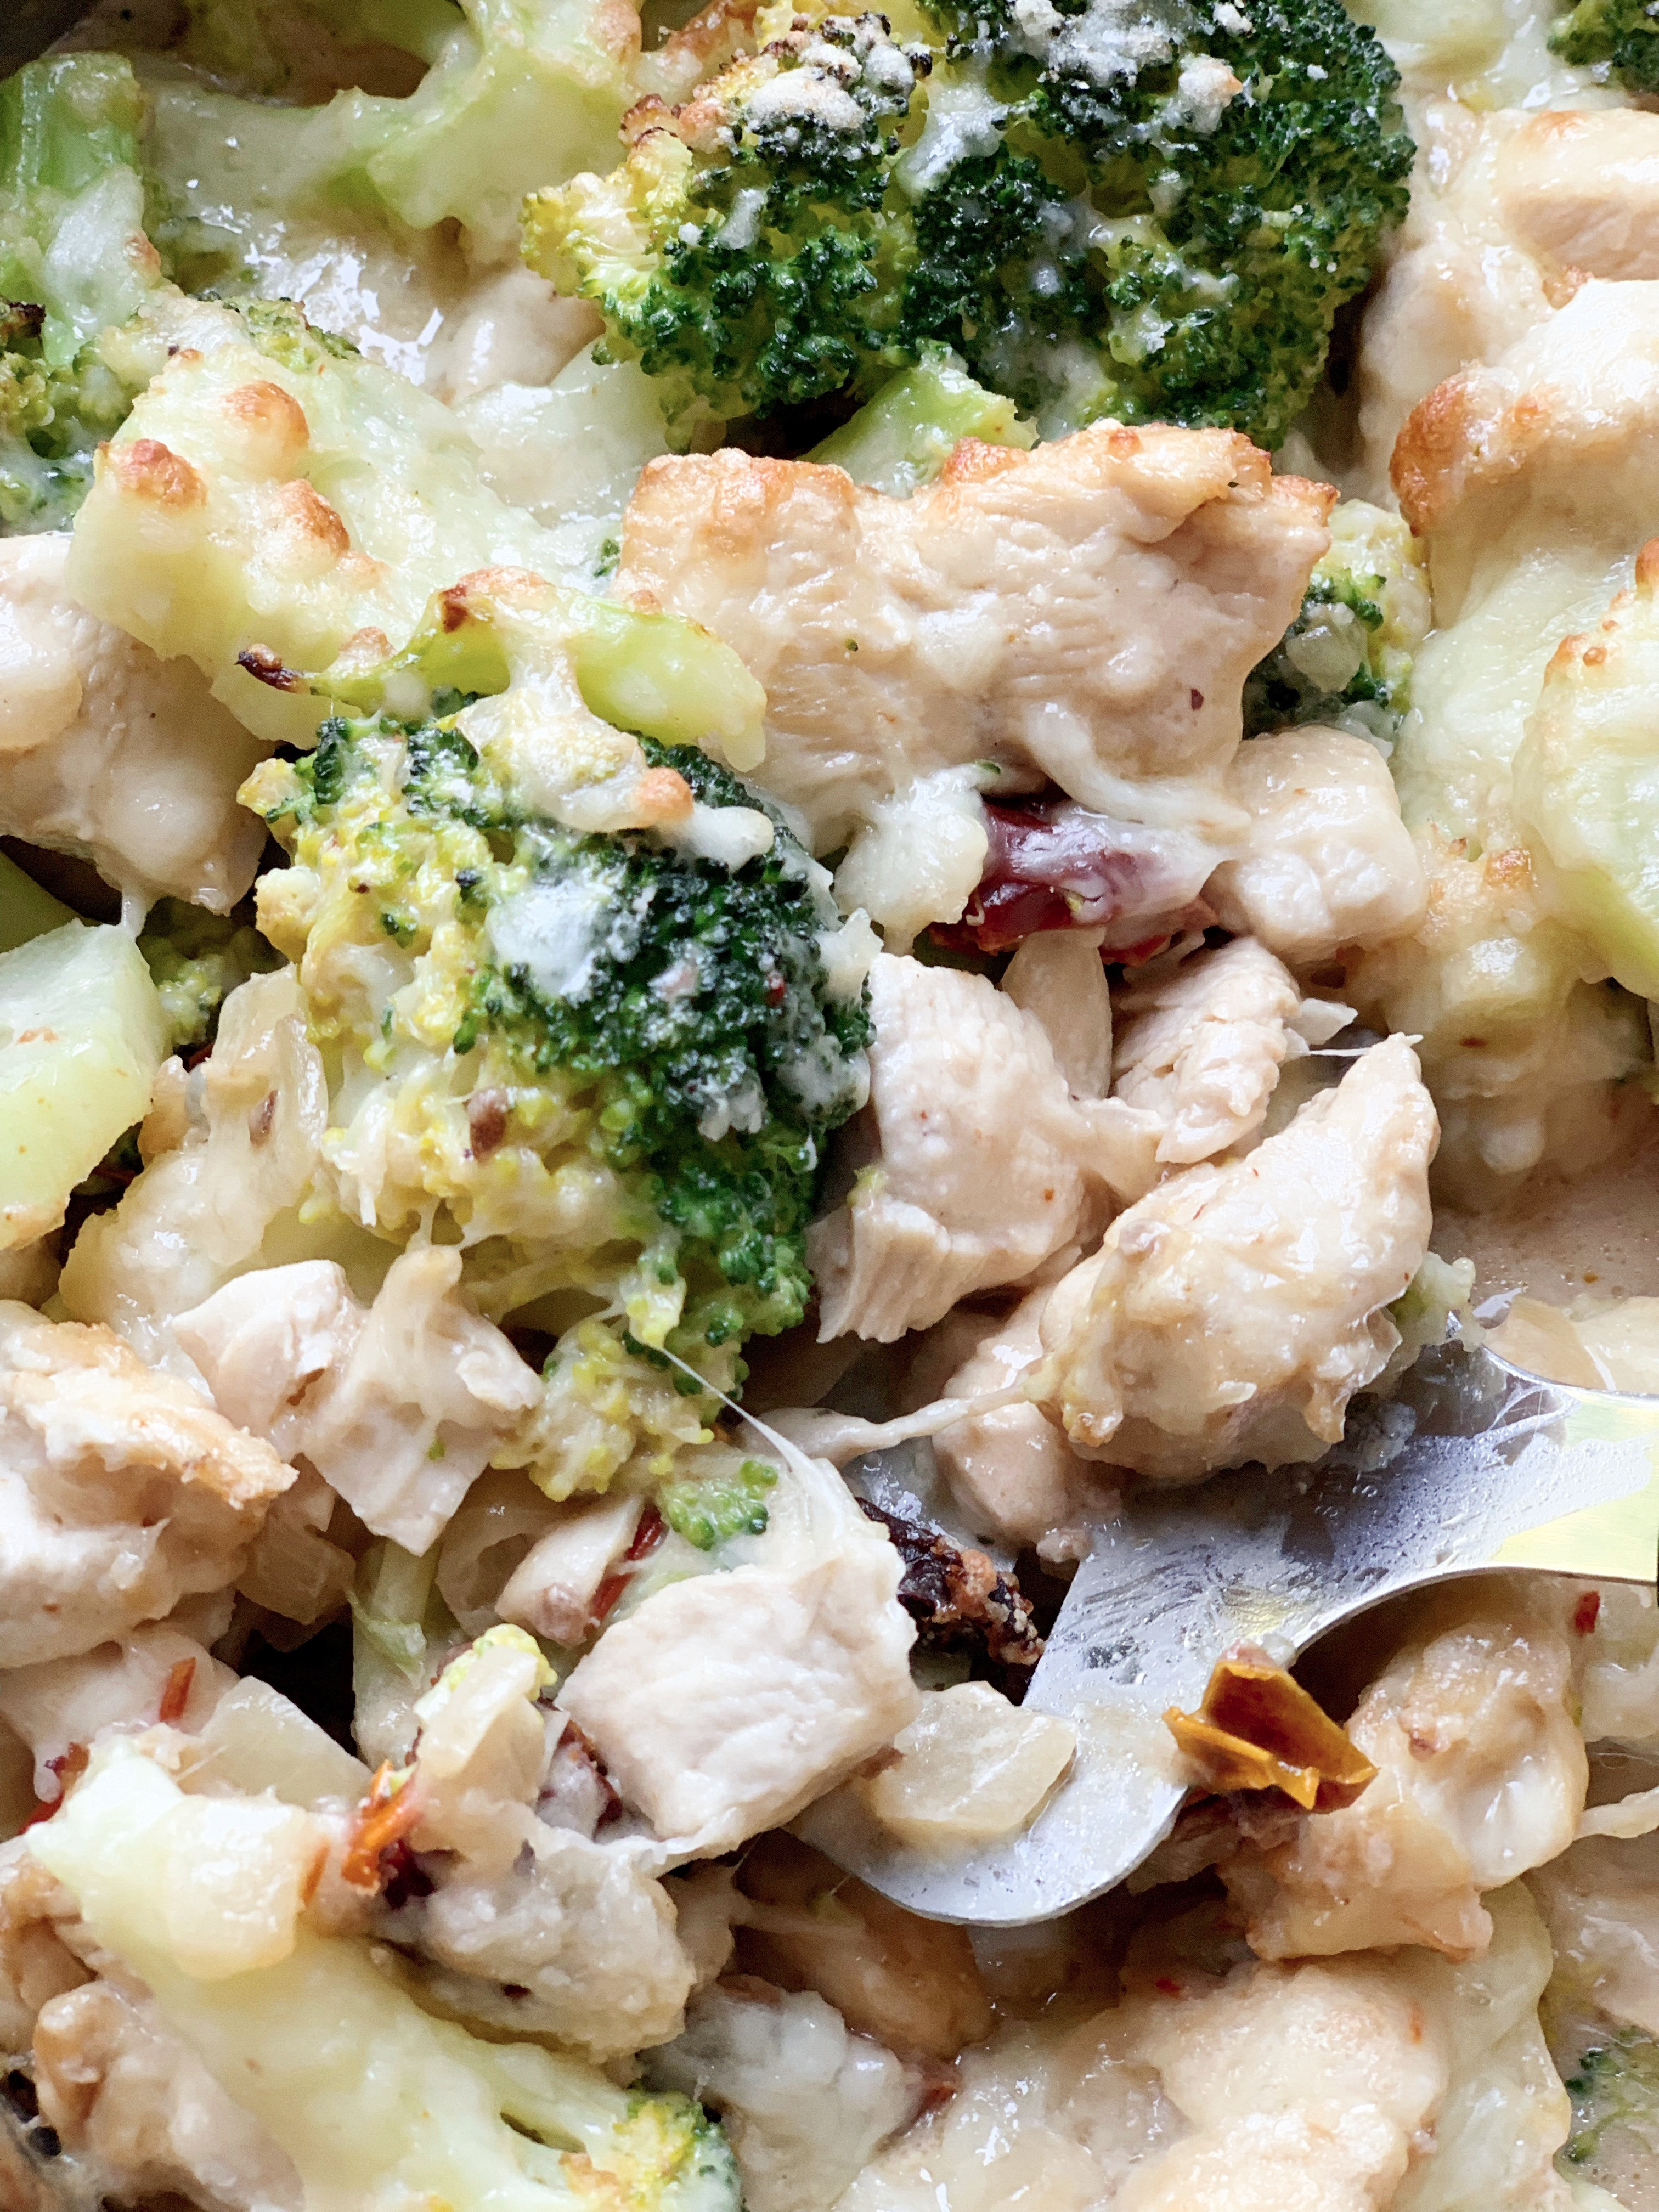 Picture of keto broccoli and chicken casserole with sun dried tomato sauce and mascarpone cheese in skillet